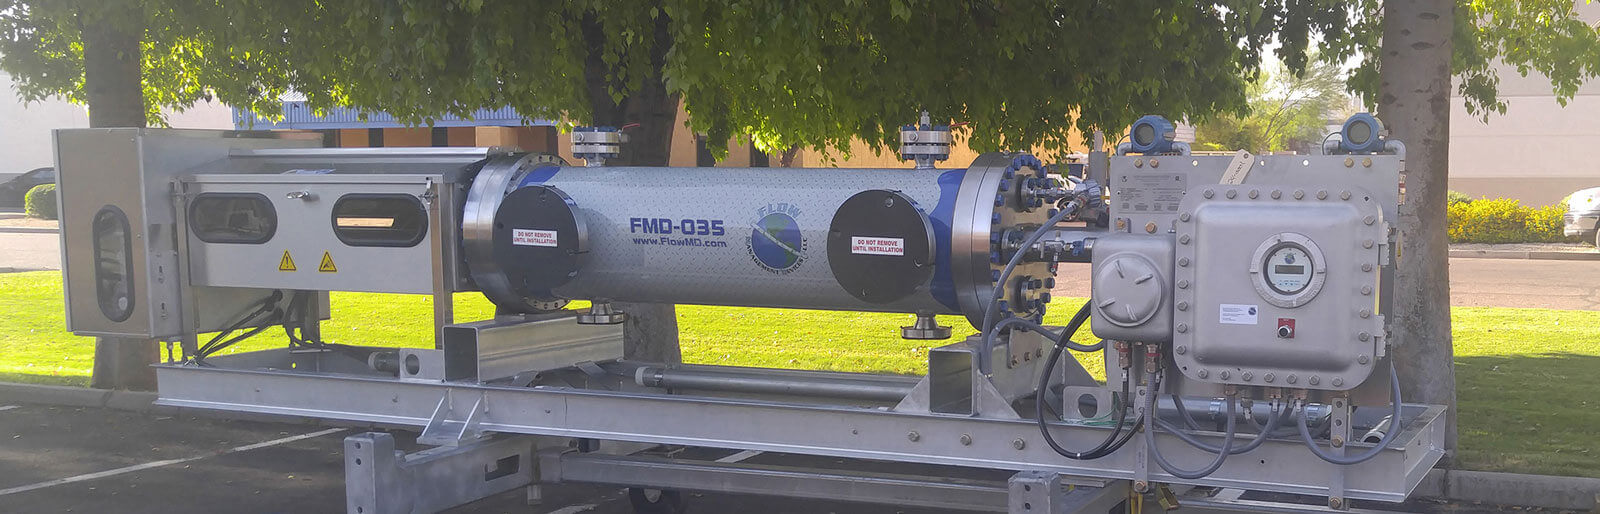 FMD035 Small VOlume Prover Staged for Shipment to Saudi Arabia Cal Lab